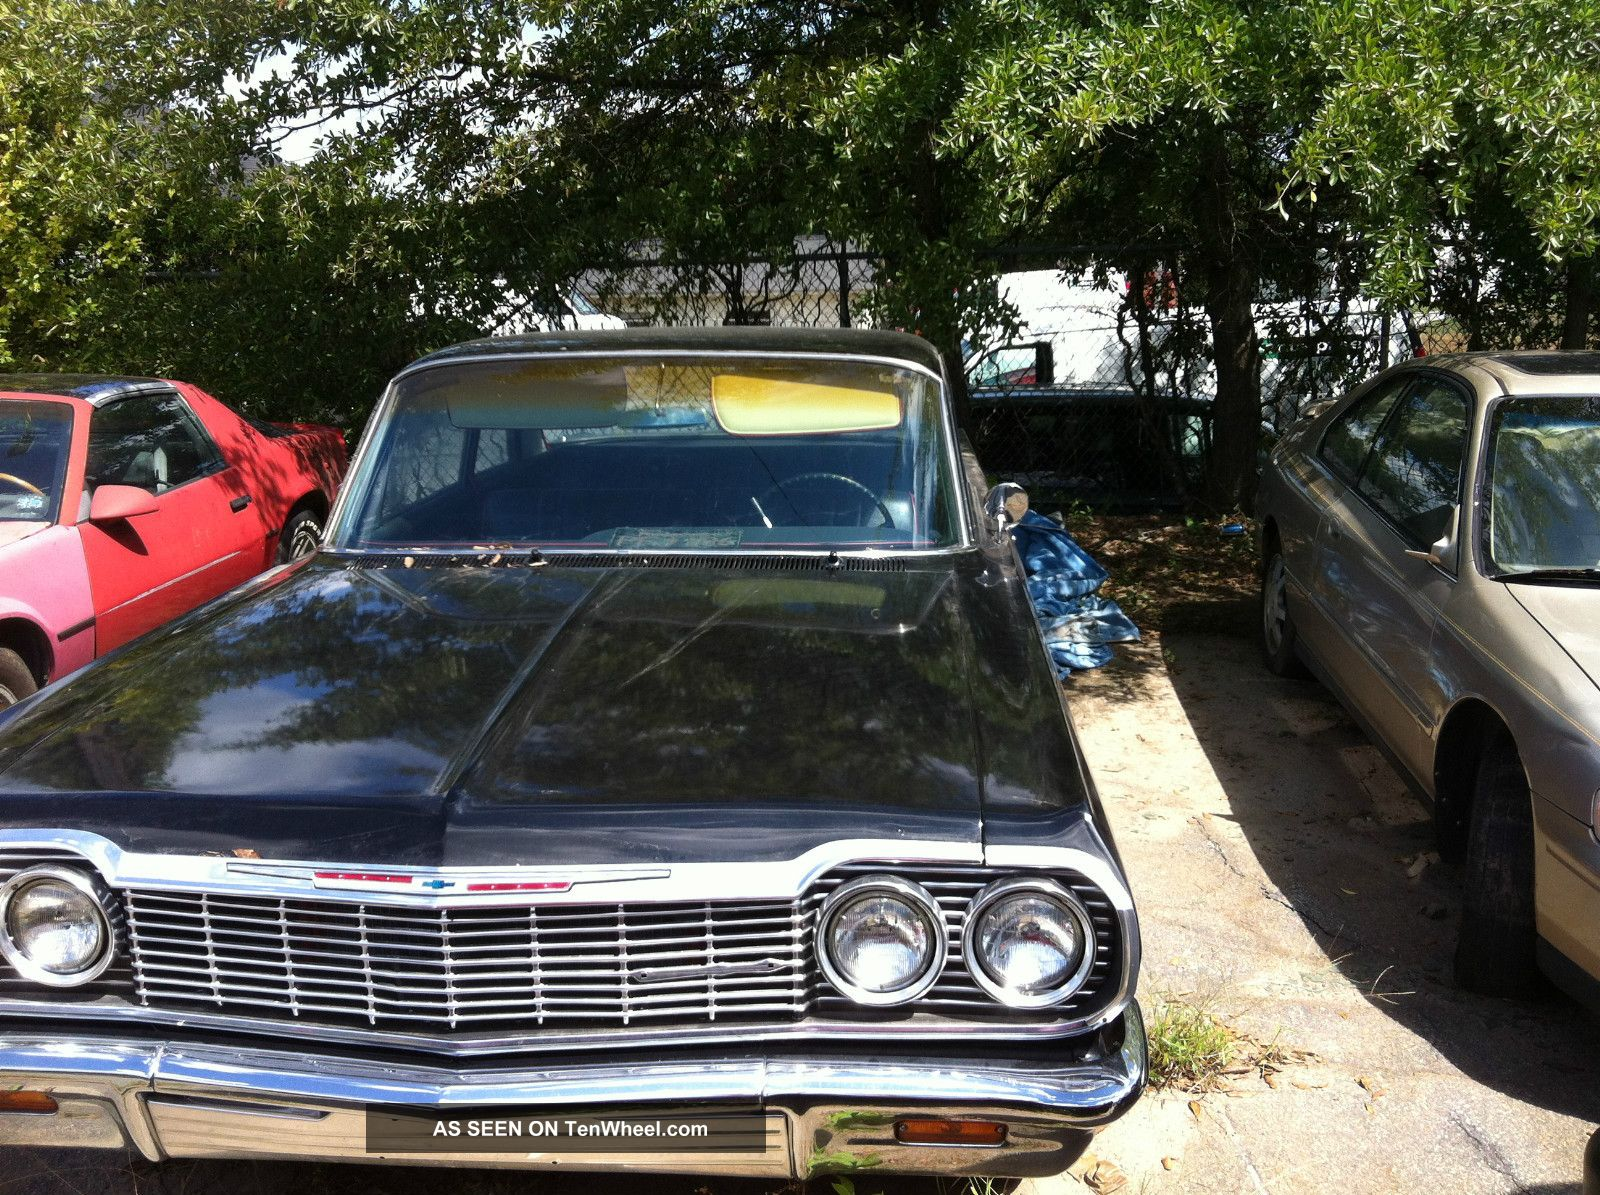 Project Car 1964 Chevy Biscayne Bel Air/150/210 photo